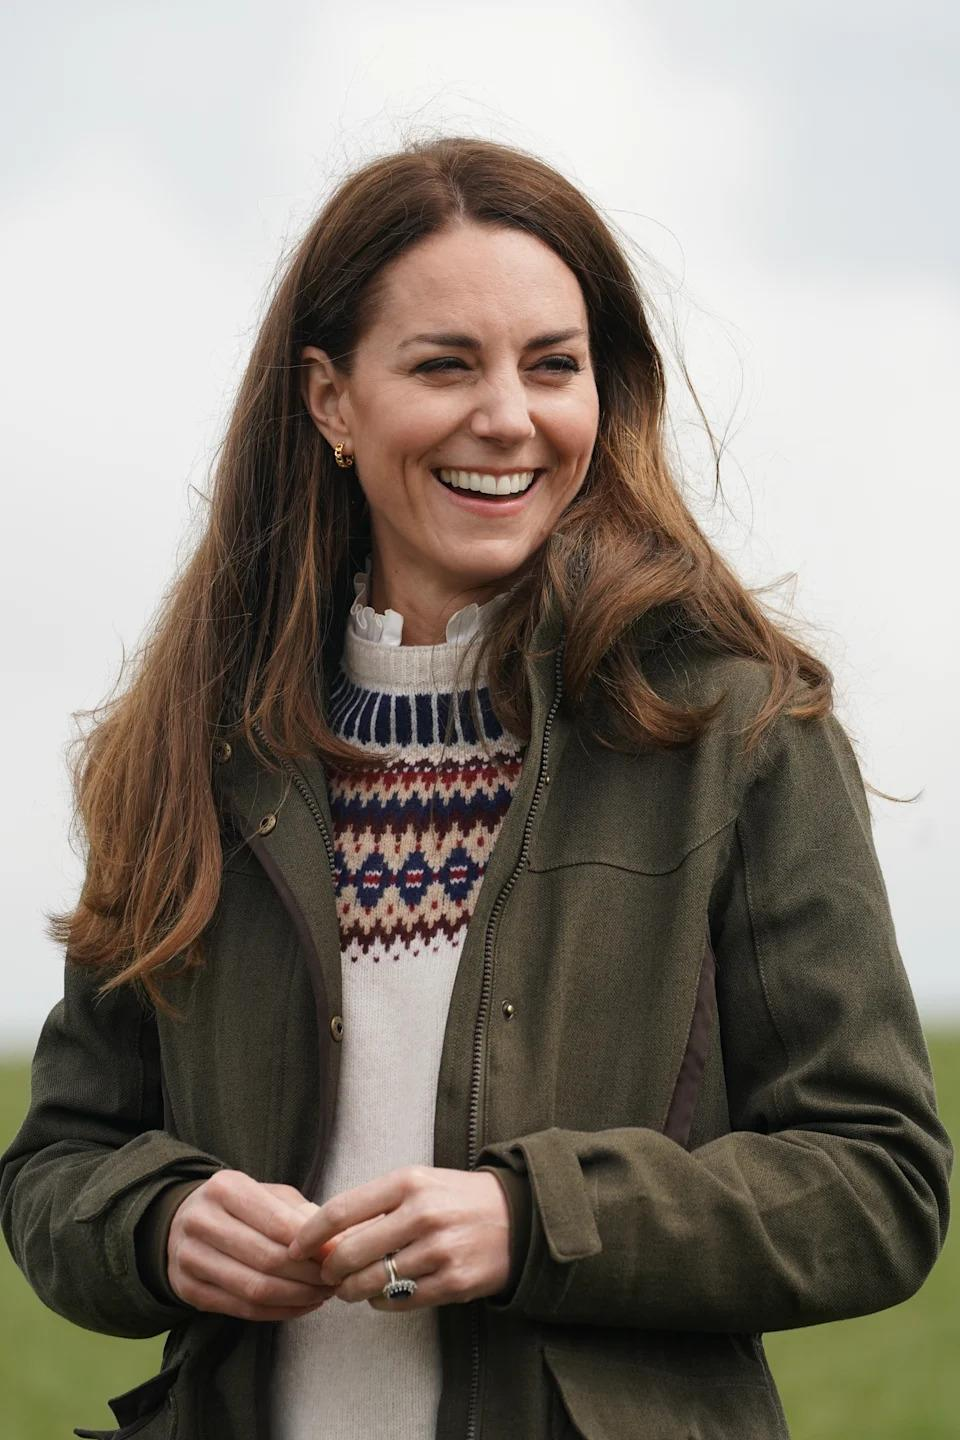 The Duchess of Cambridge during a visit to Manor Farm in Little Stainton on April 27, 2021. (PA)